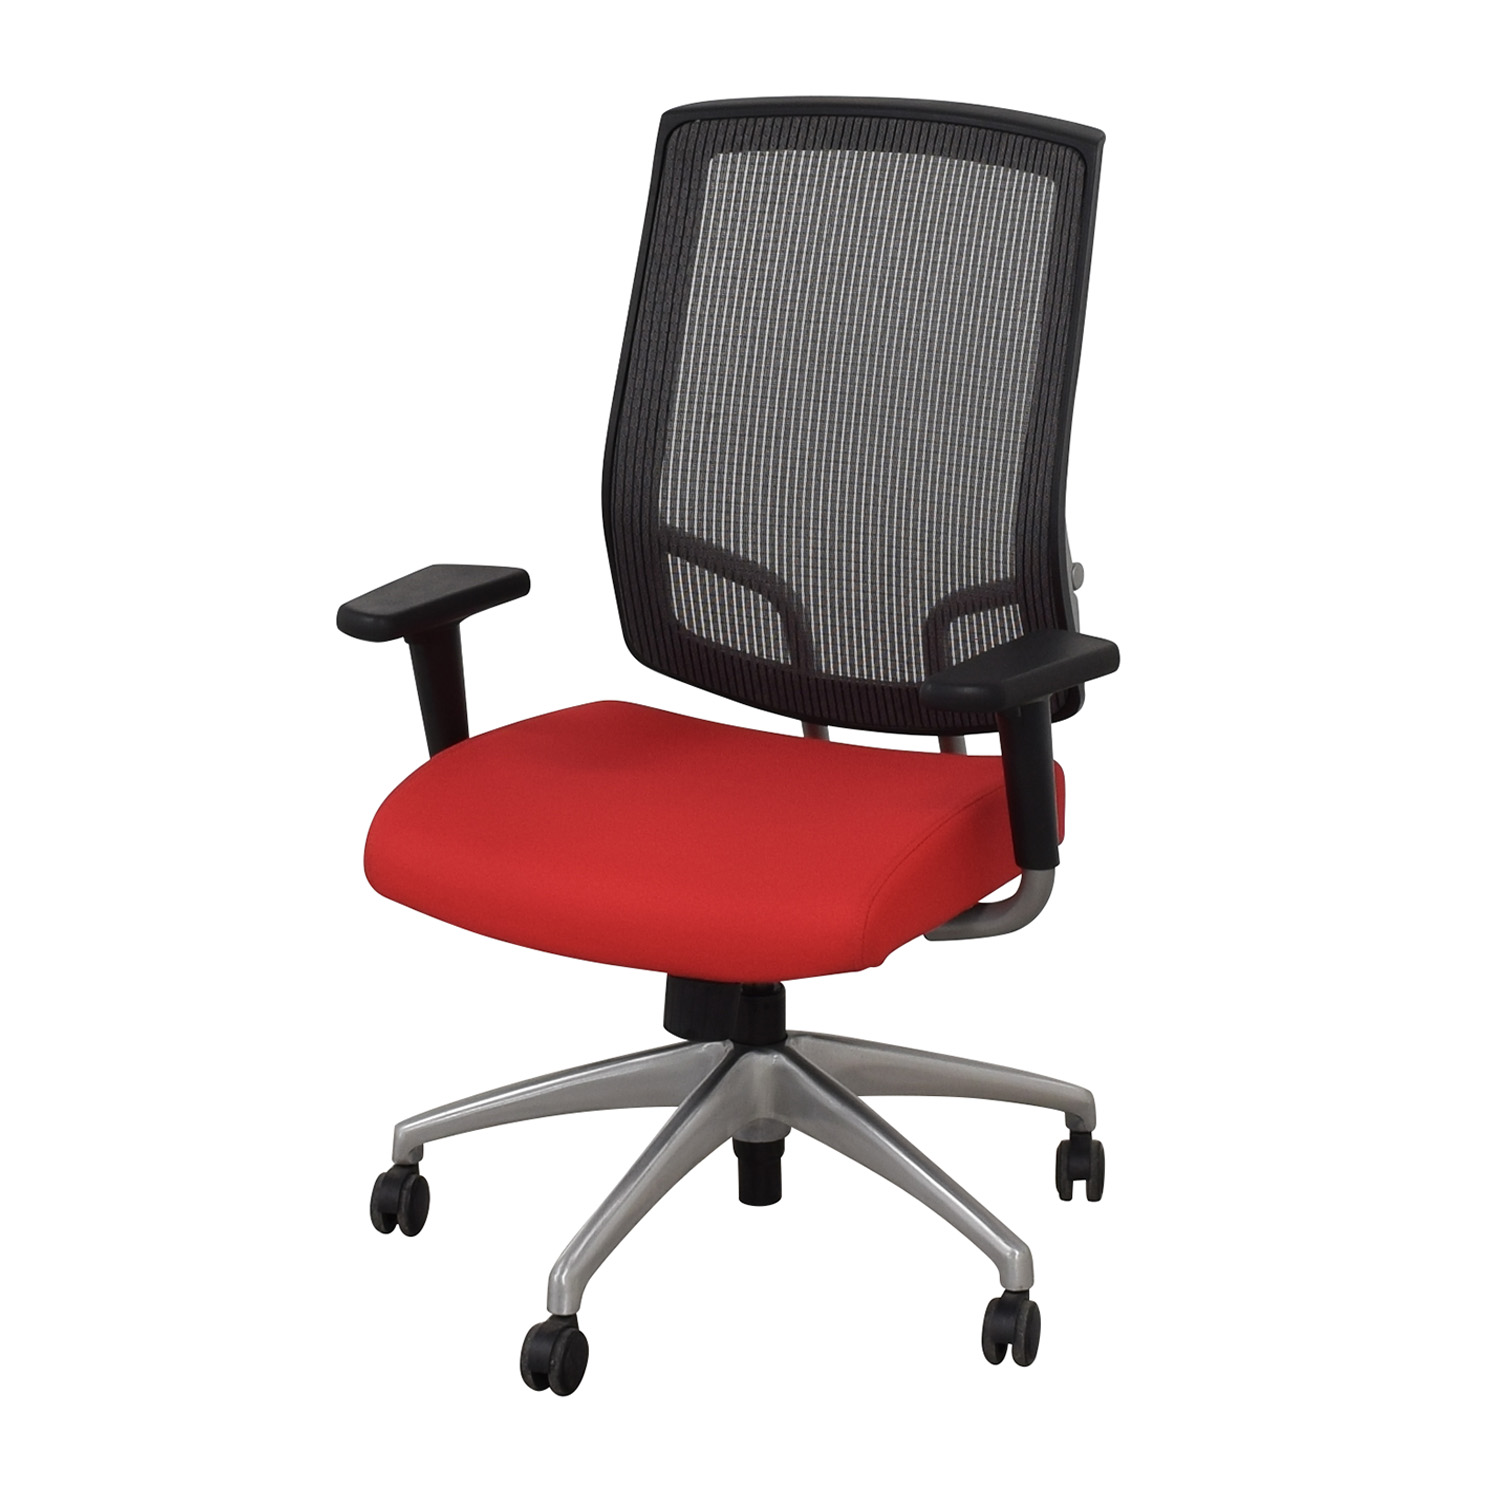 SitOnIt SitOnIt Focus High Back Office Chair Chairs